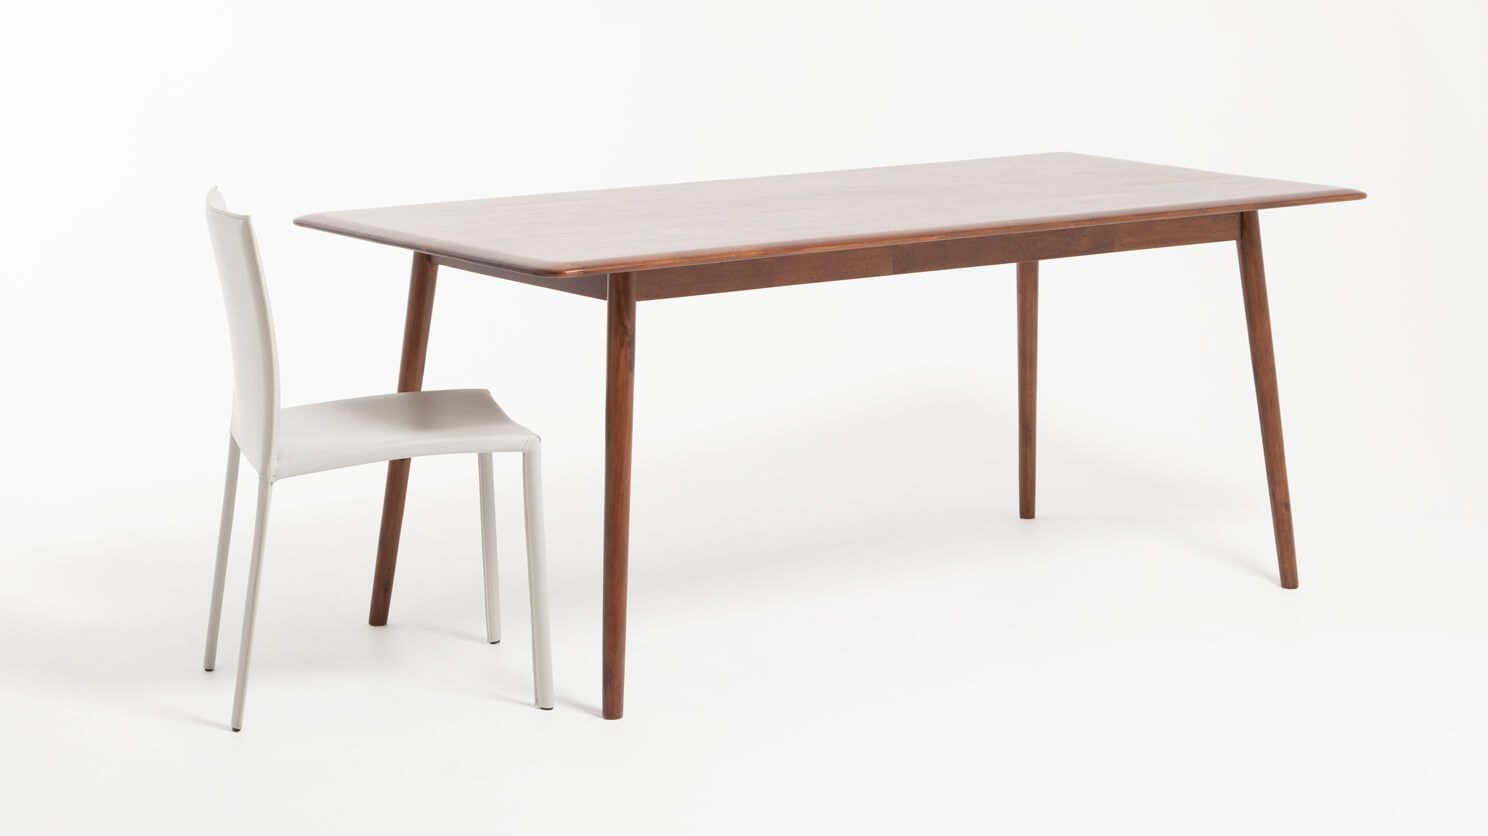 Harvest Dining Table By Eq3 Showroom 400 At 220 Elm Hpmkt